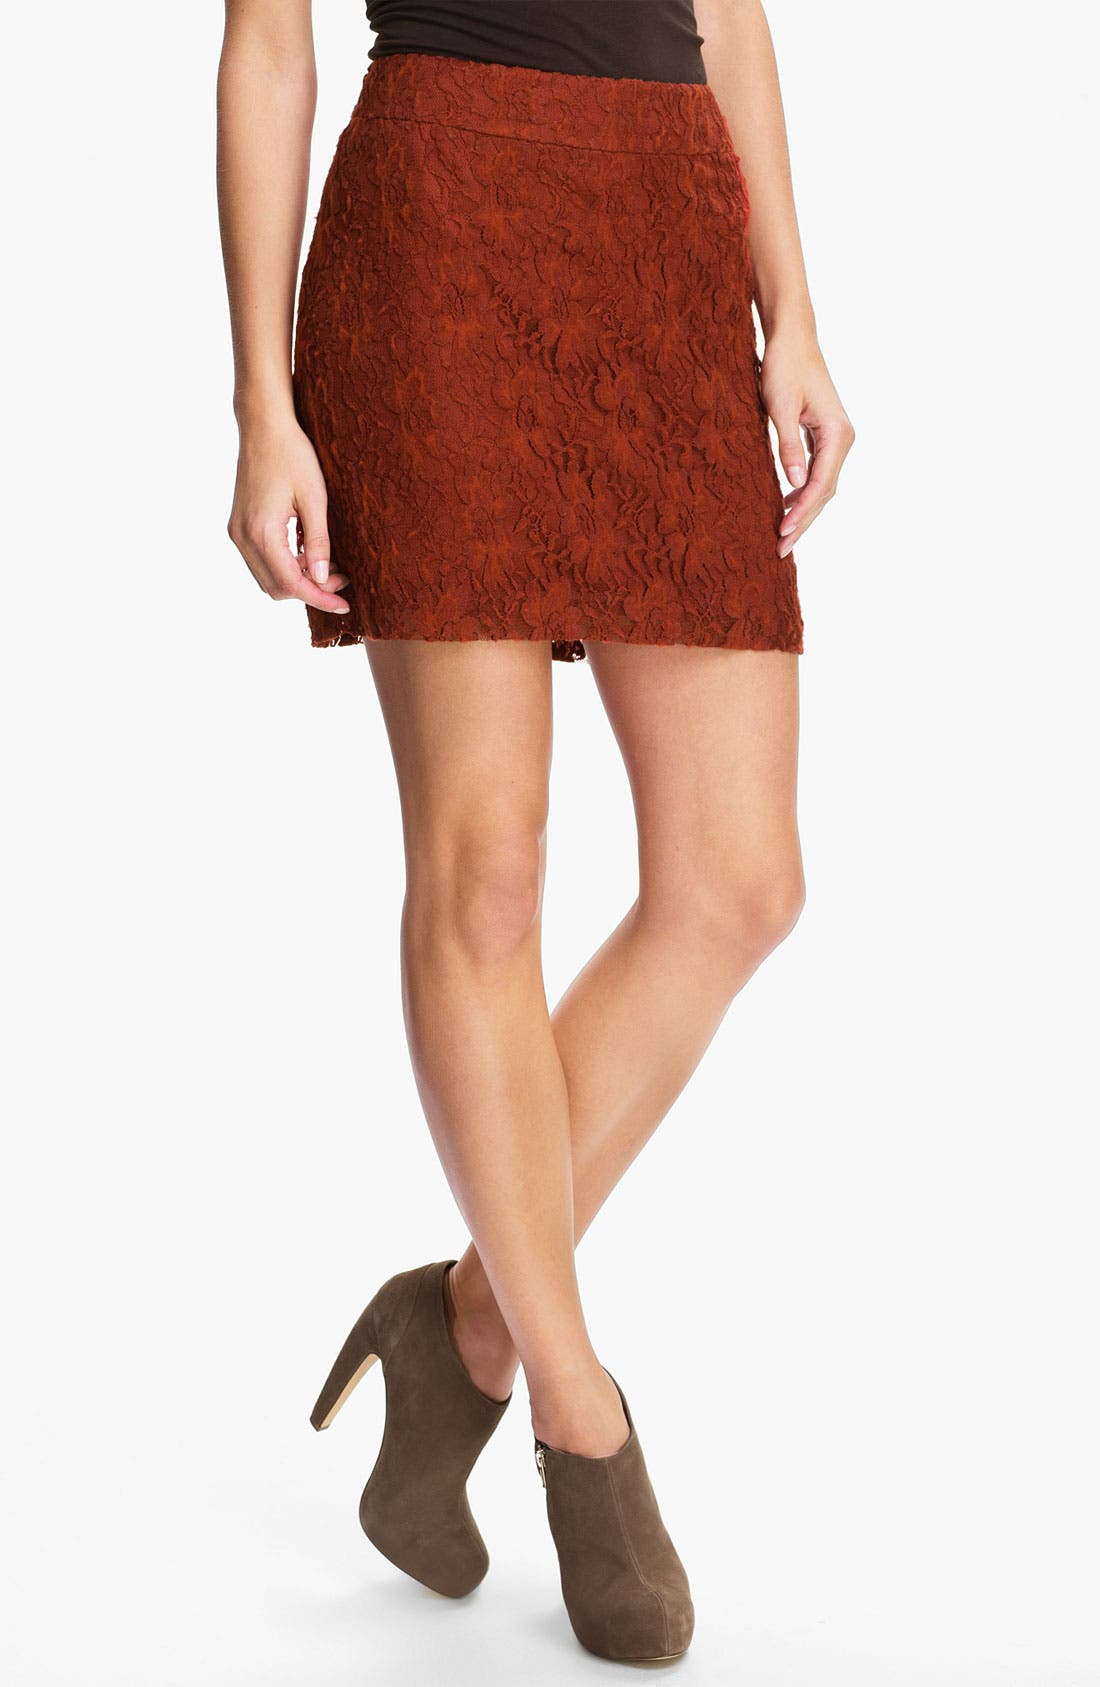 Main Image - Kensie 'Fuzzy Lace' Skirt (Online Exclusive)